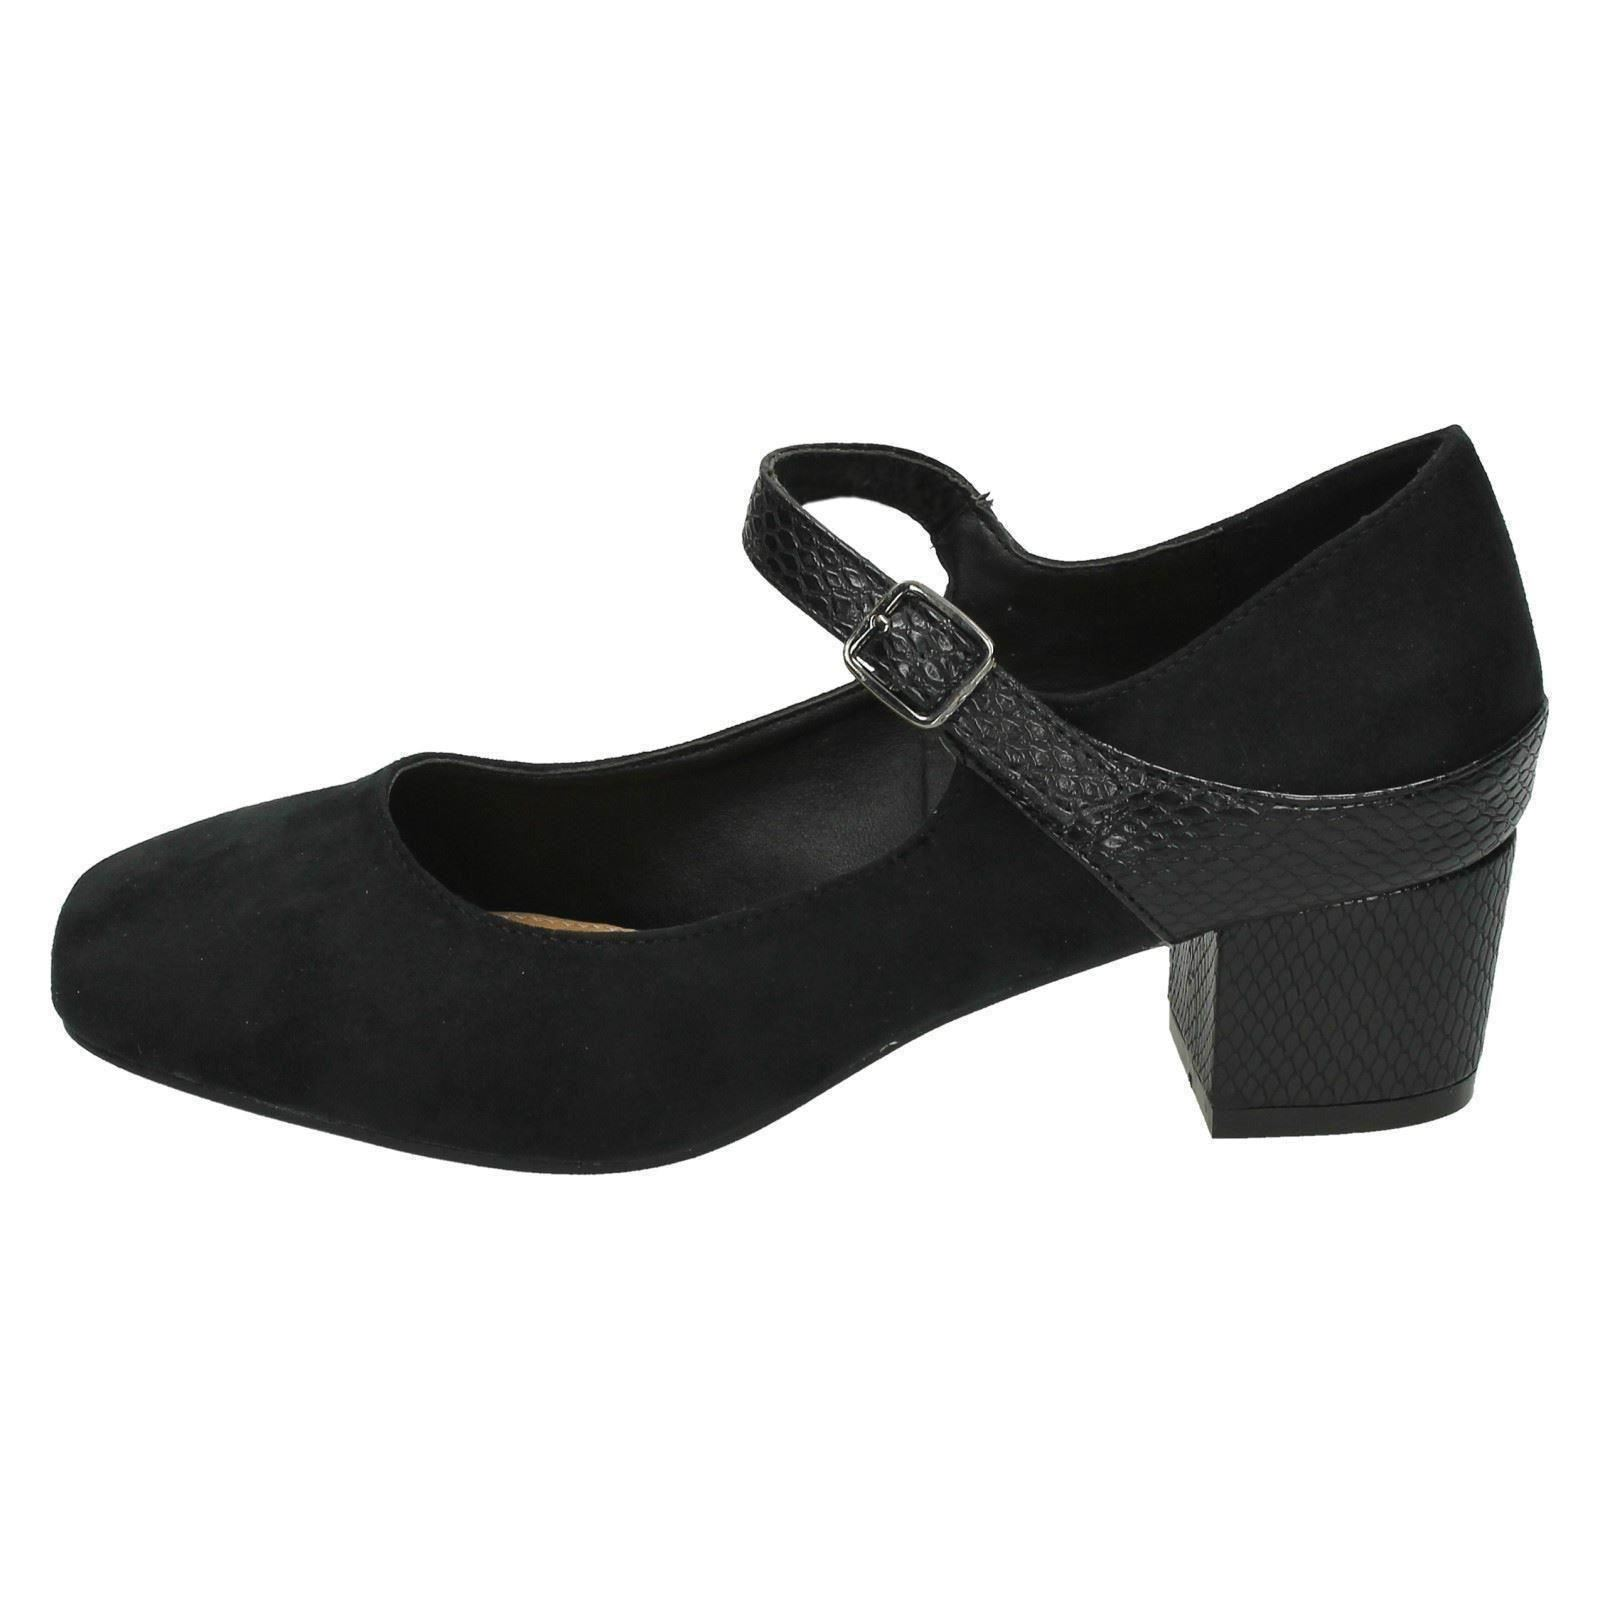 Ladies-Anne-Michelle-Wide-Fitting-Mid-Chunky-Heel-Mary-Jane-Shoes thumbnail 3